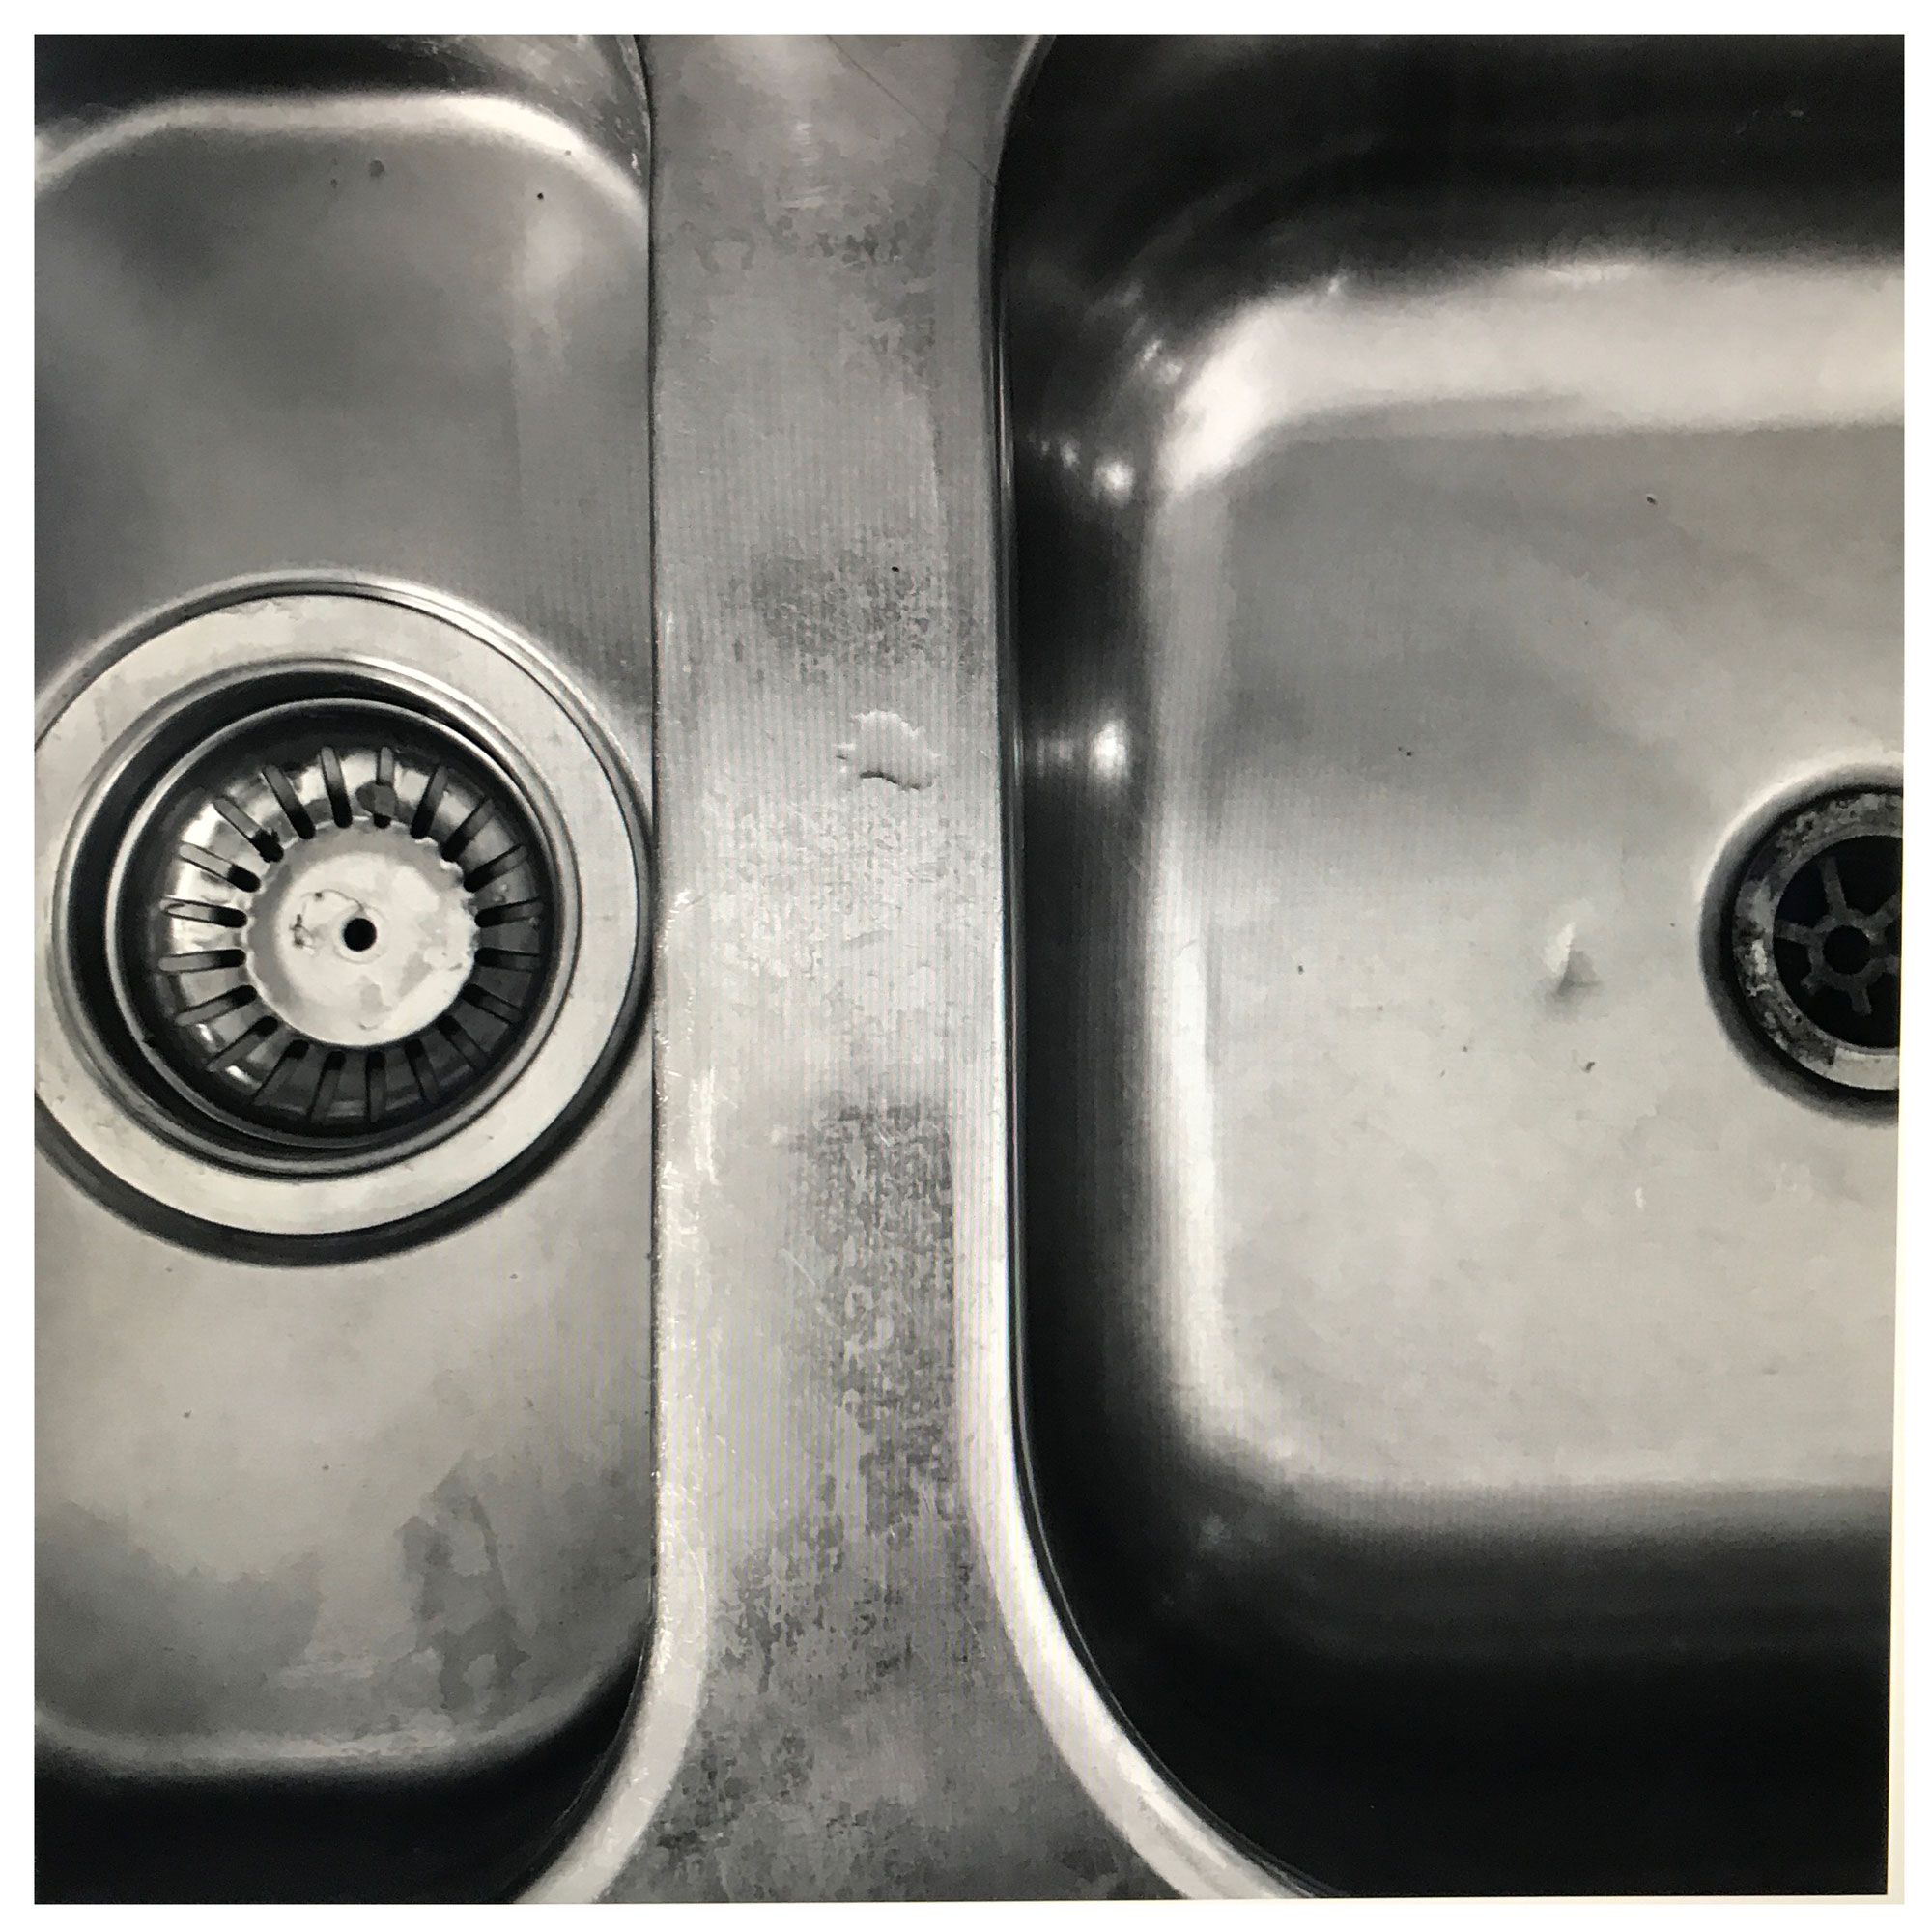 My kitchen sink, 17 December 2017